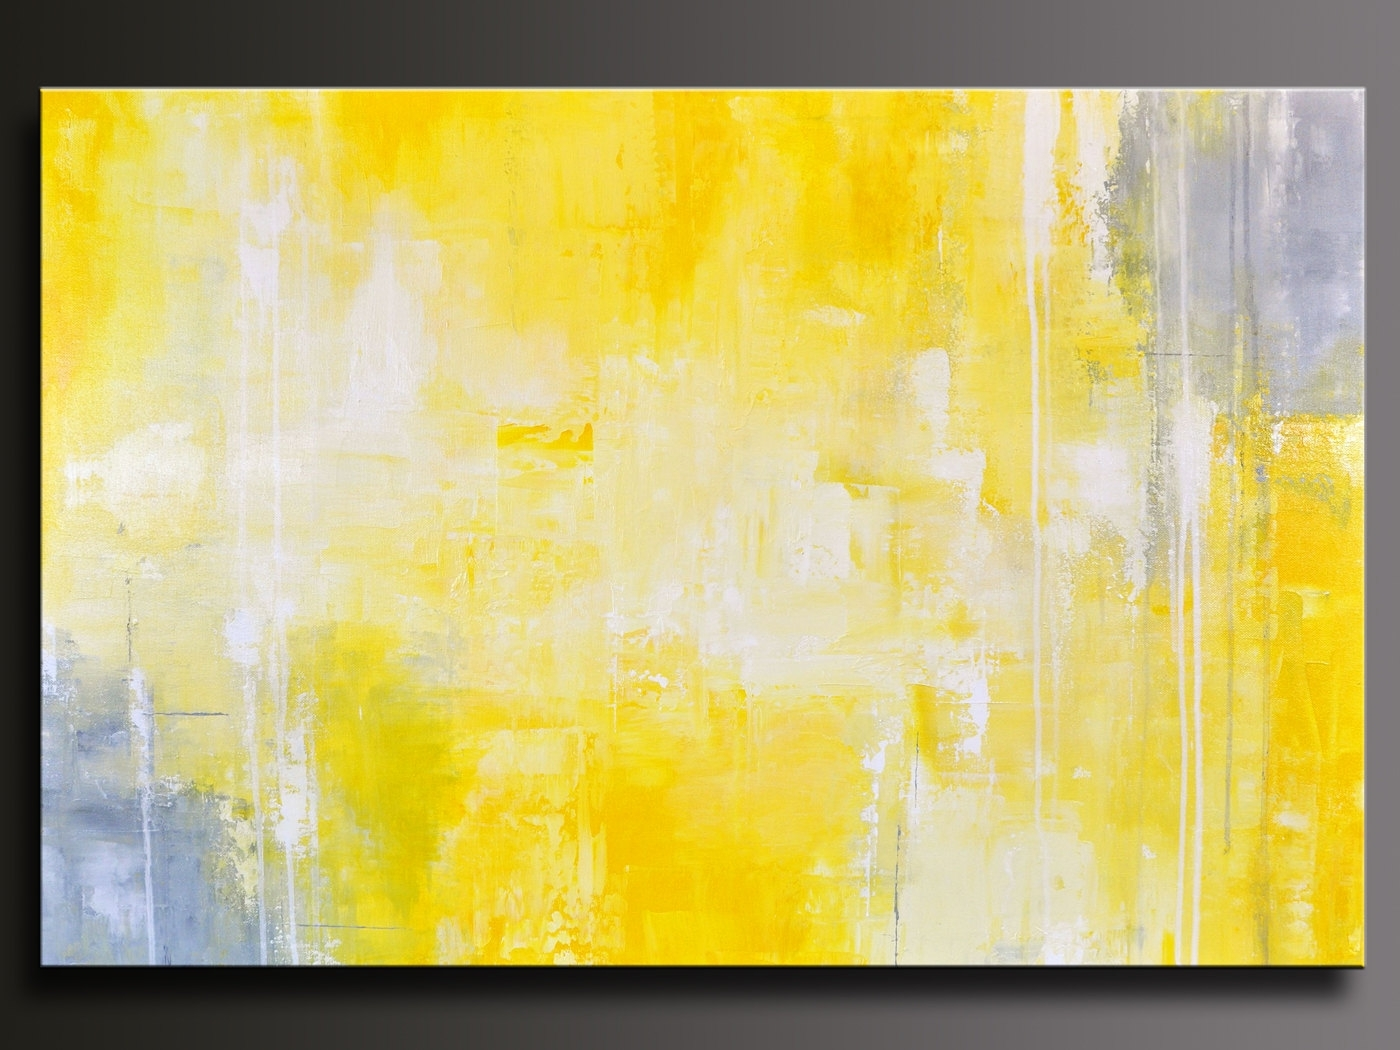 Yellow And Grey Wall Art with Favorite Diy Yellow And Gray Wall Cool Yellow And Gray Wall Decor - Wall